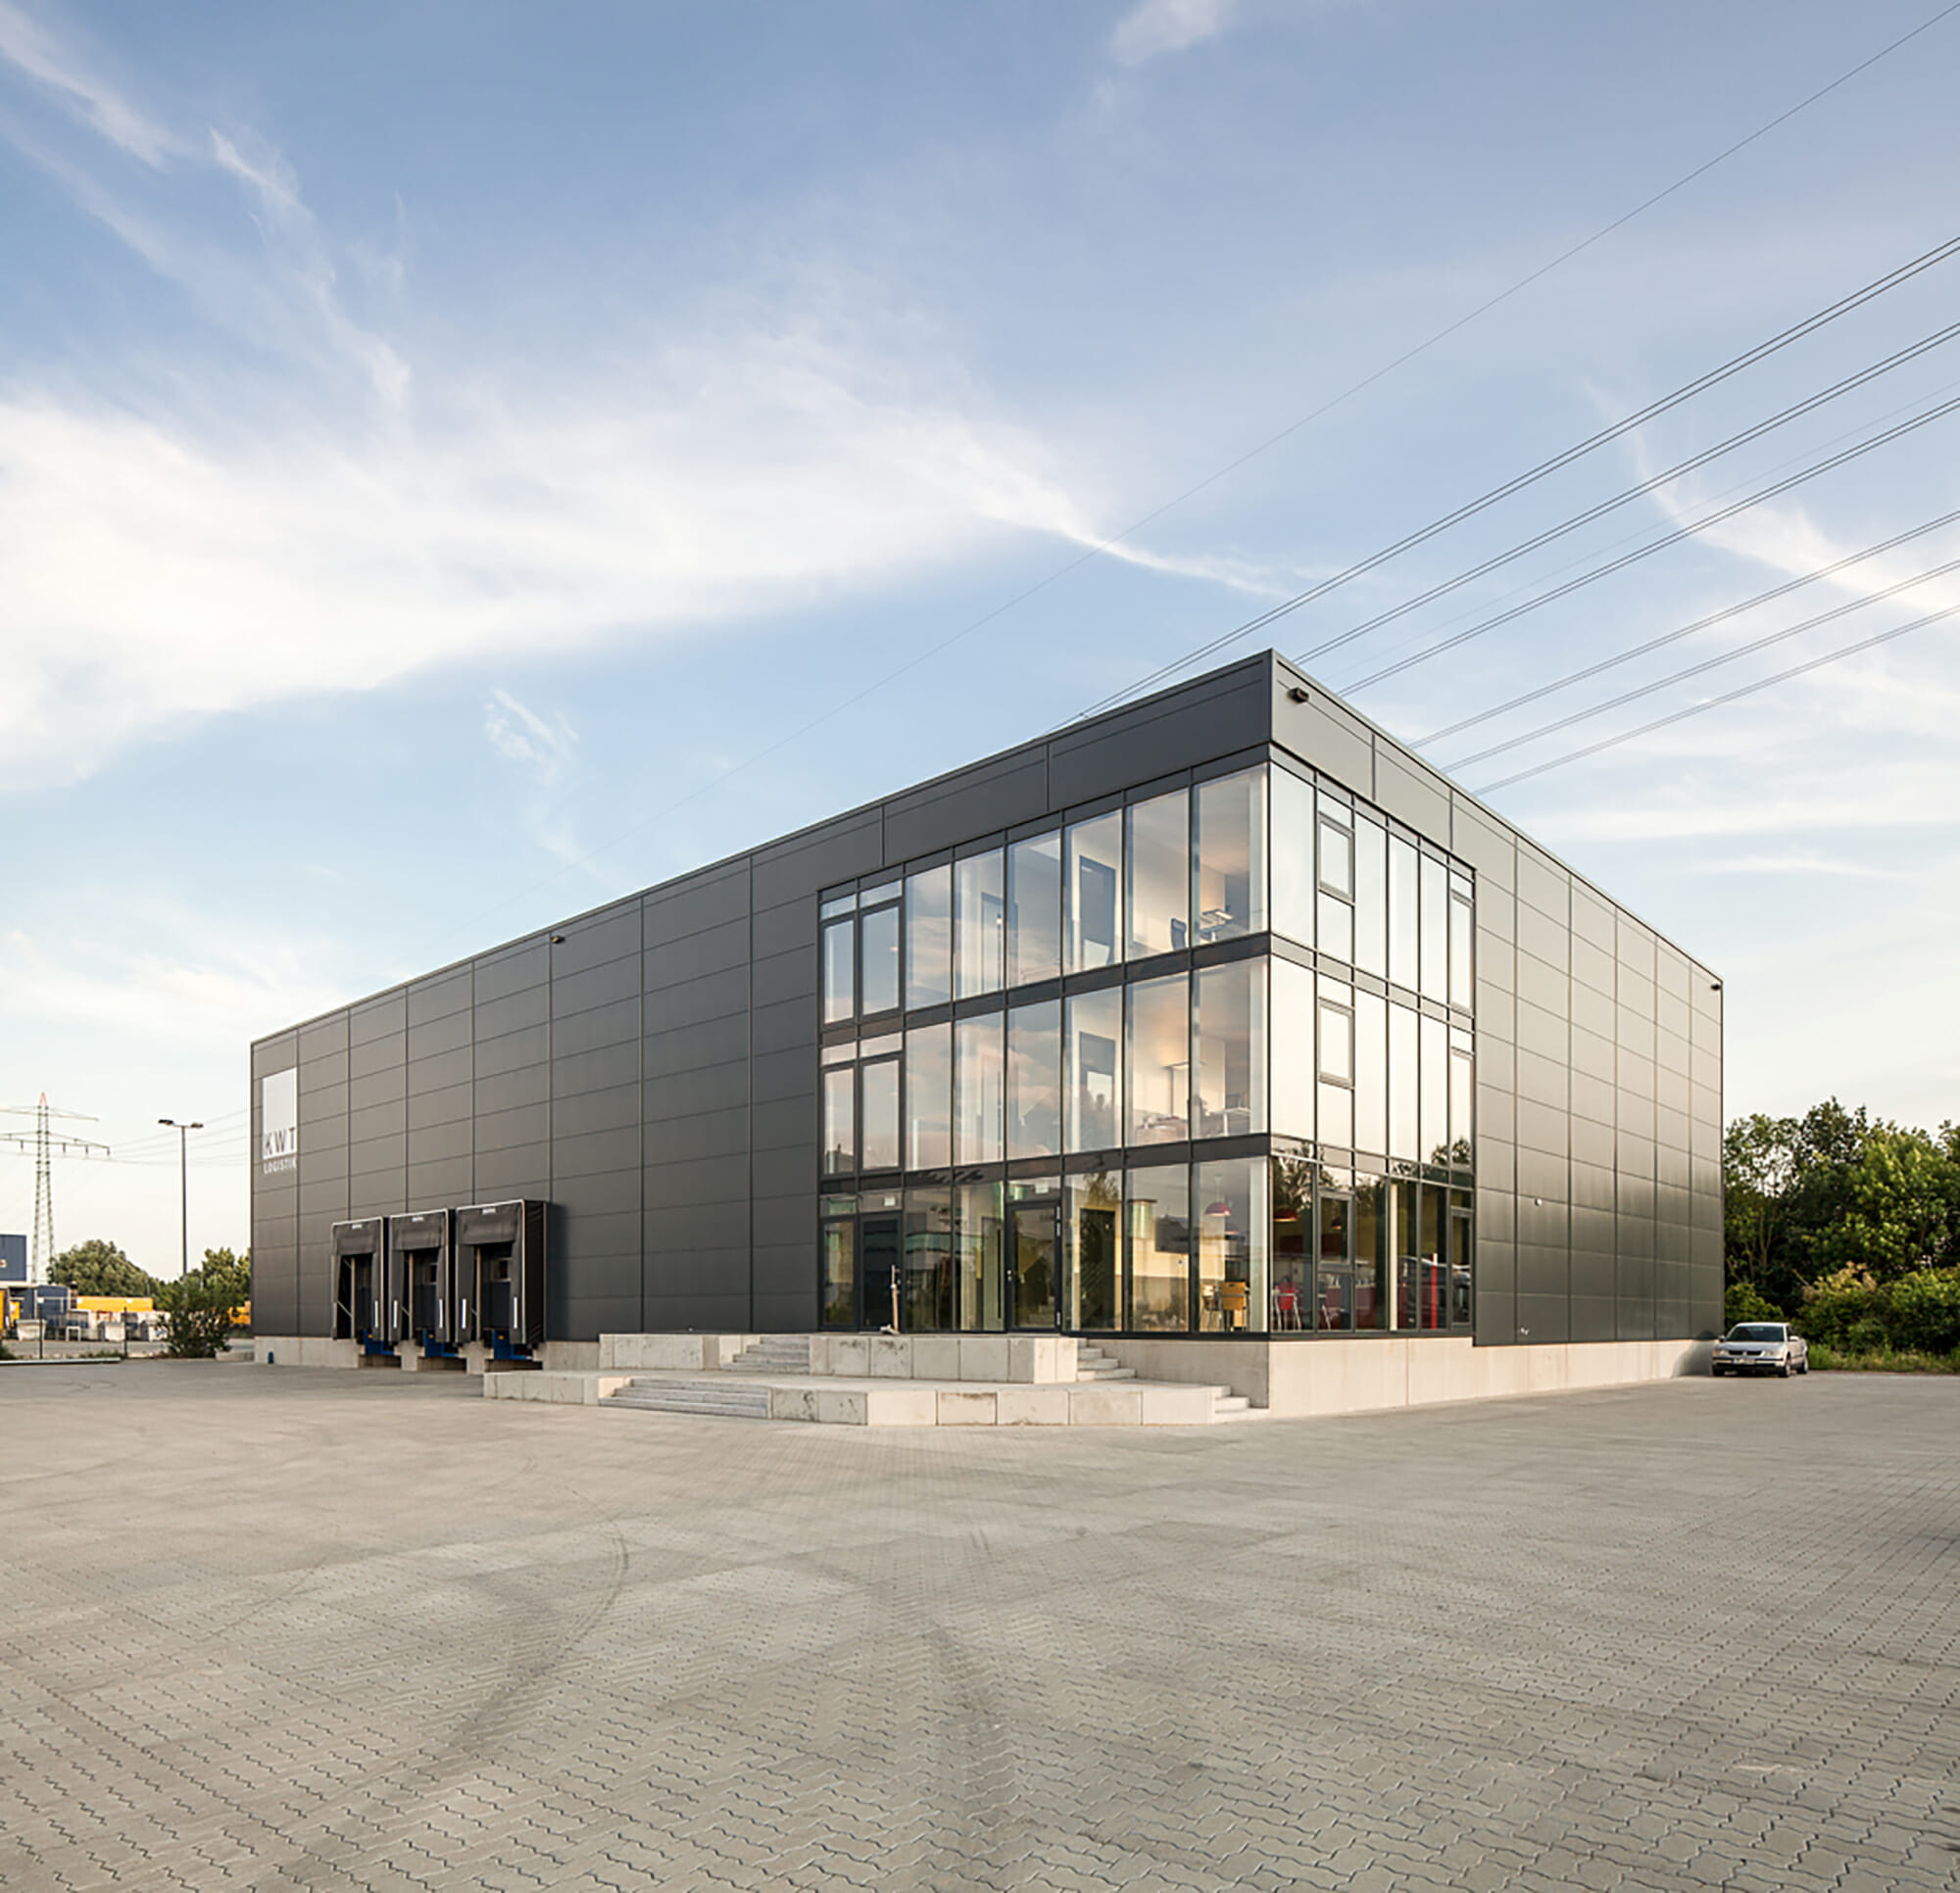 Log gmd architekten bremen - Architekten bremen ...